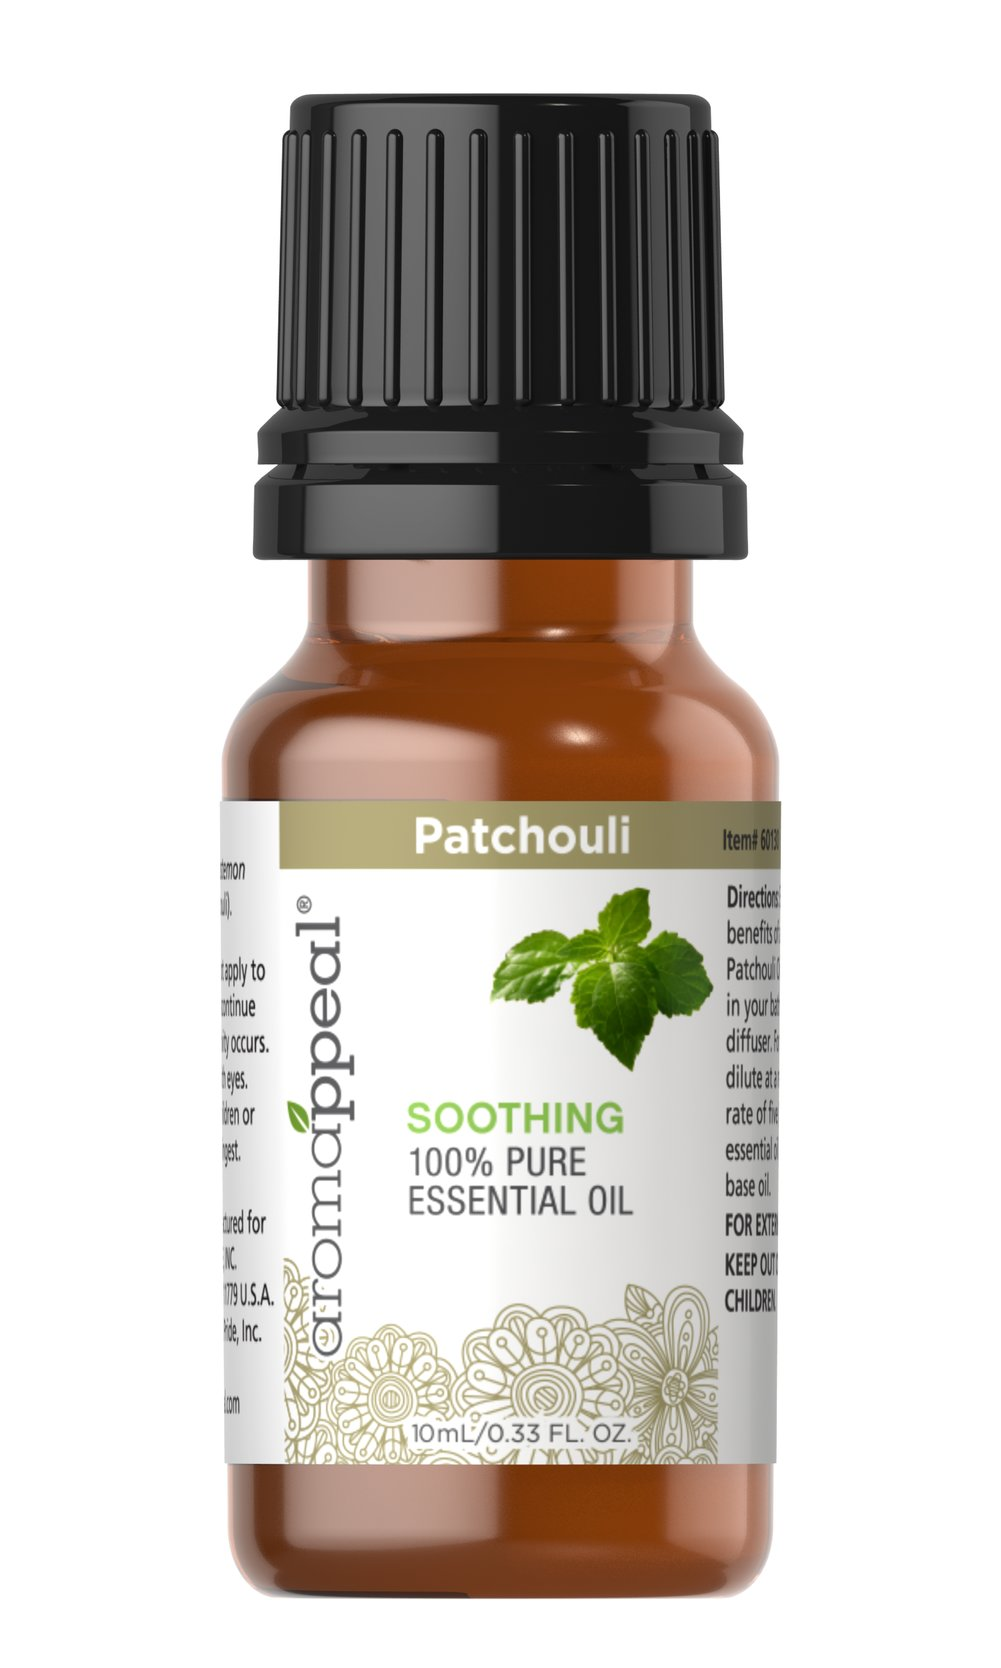 "Patchouli 100% Pure Essential Oil <p>Distinguished by its sweetly rich, earthy scent, Patchouli can set the scene for a quietly meditative aromatherapy encounter.</p><p></p><p>Experience its tranquil allure and its traditional effects on digestive health, as well as its use to stimulate clear breathing.</p><ul><li><span class=""bold-pink"">Traditional Uses:</span> Respiratory health, digestion, tranquility and serenity, meditati"